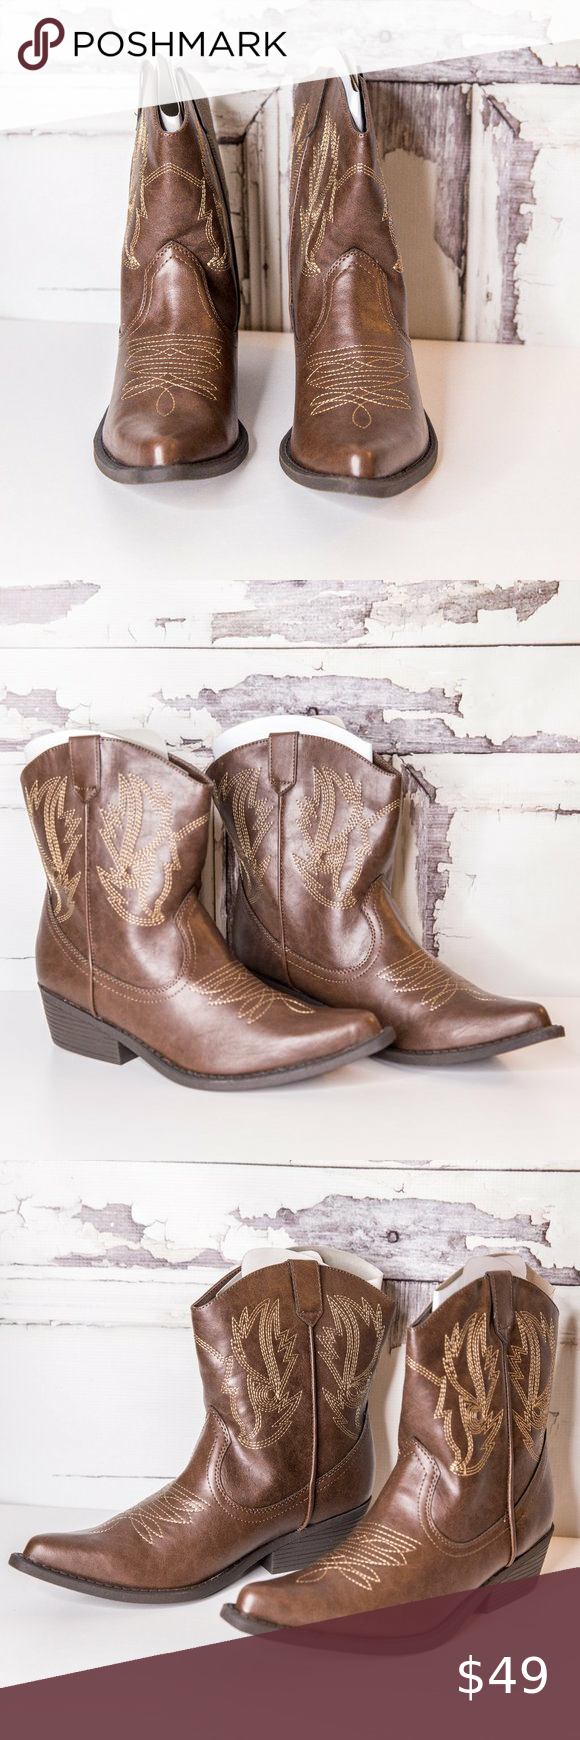 Pin on cowboy-boots